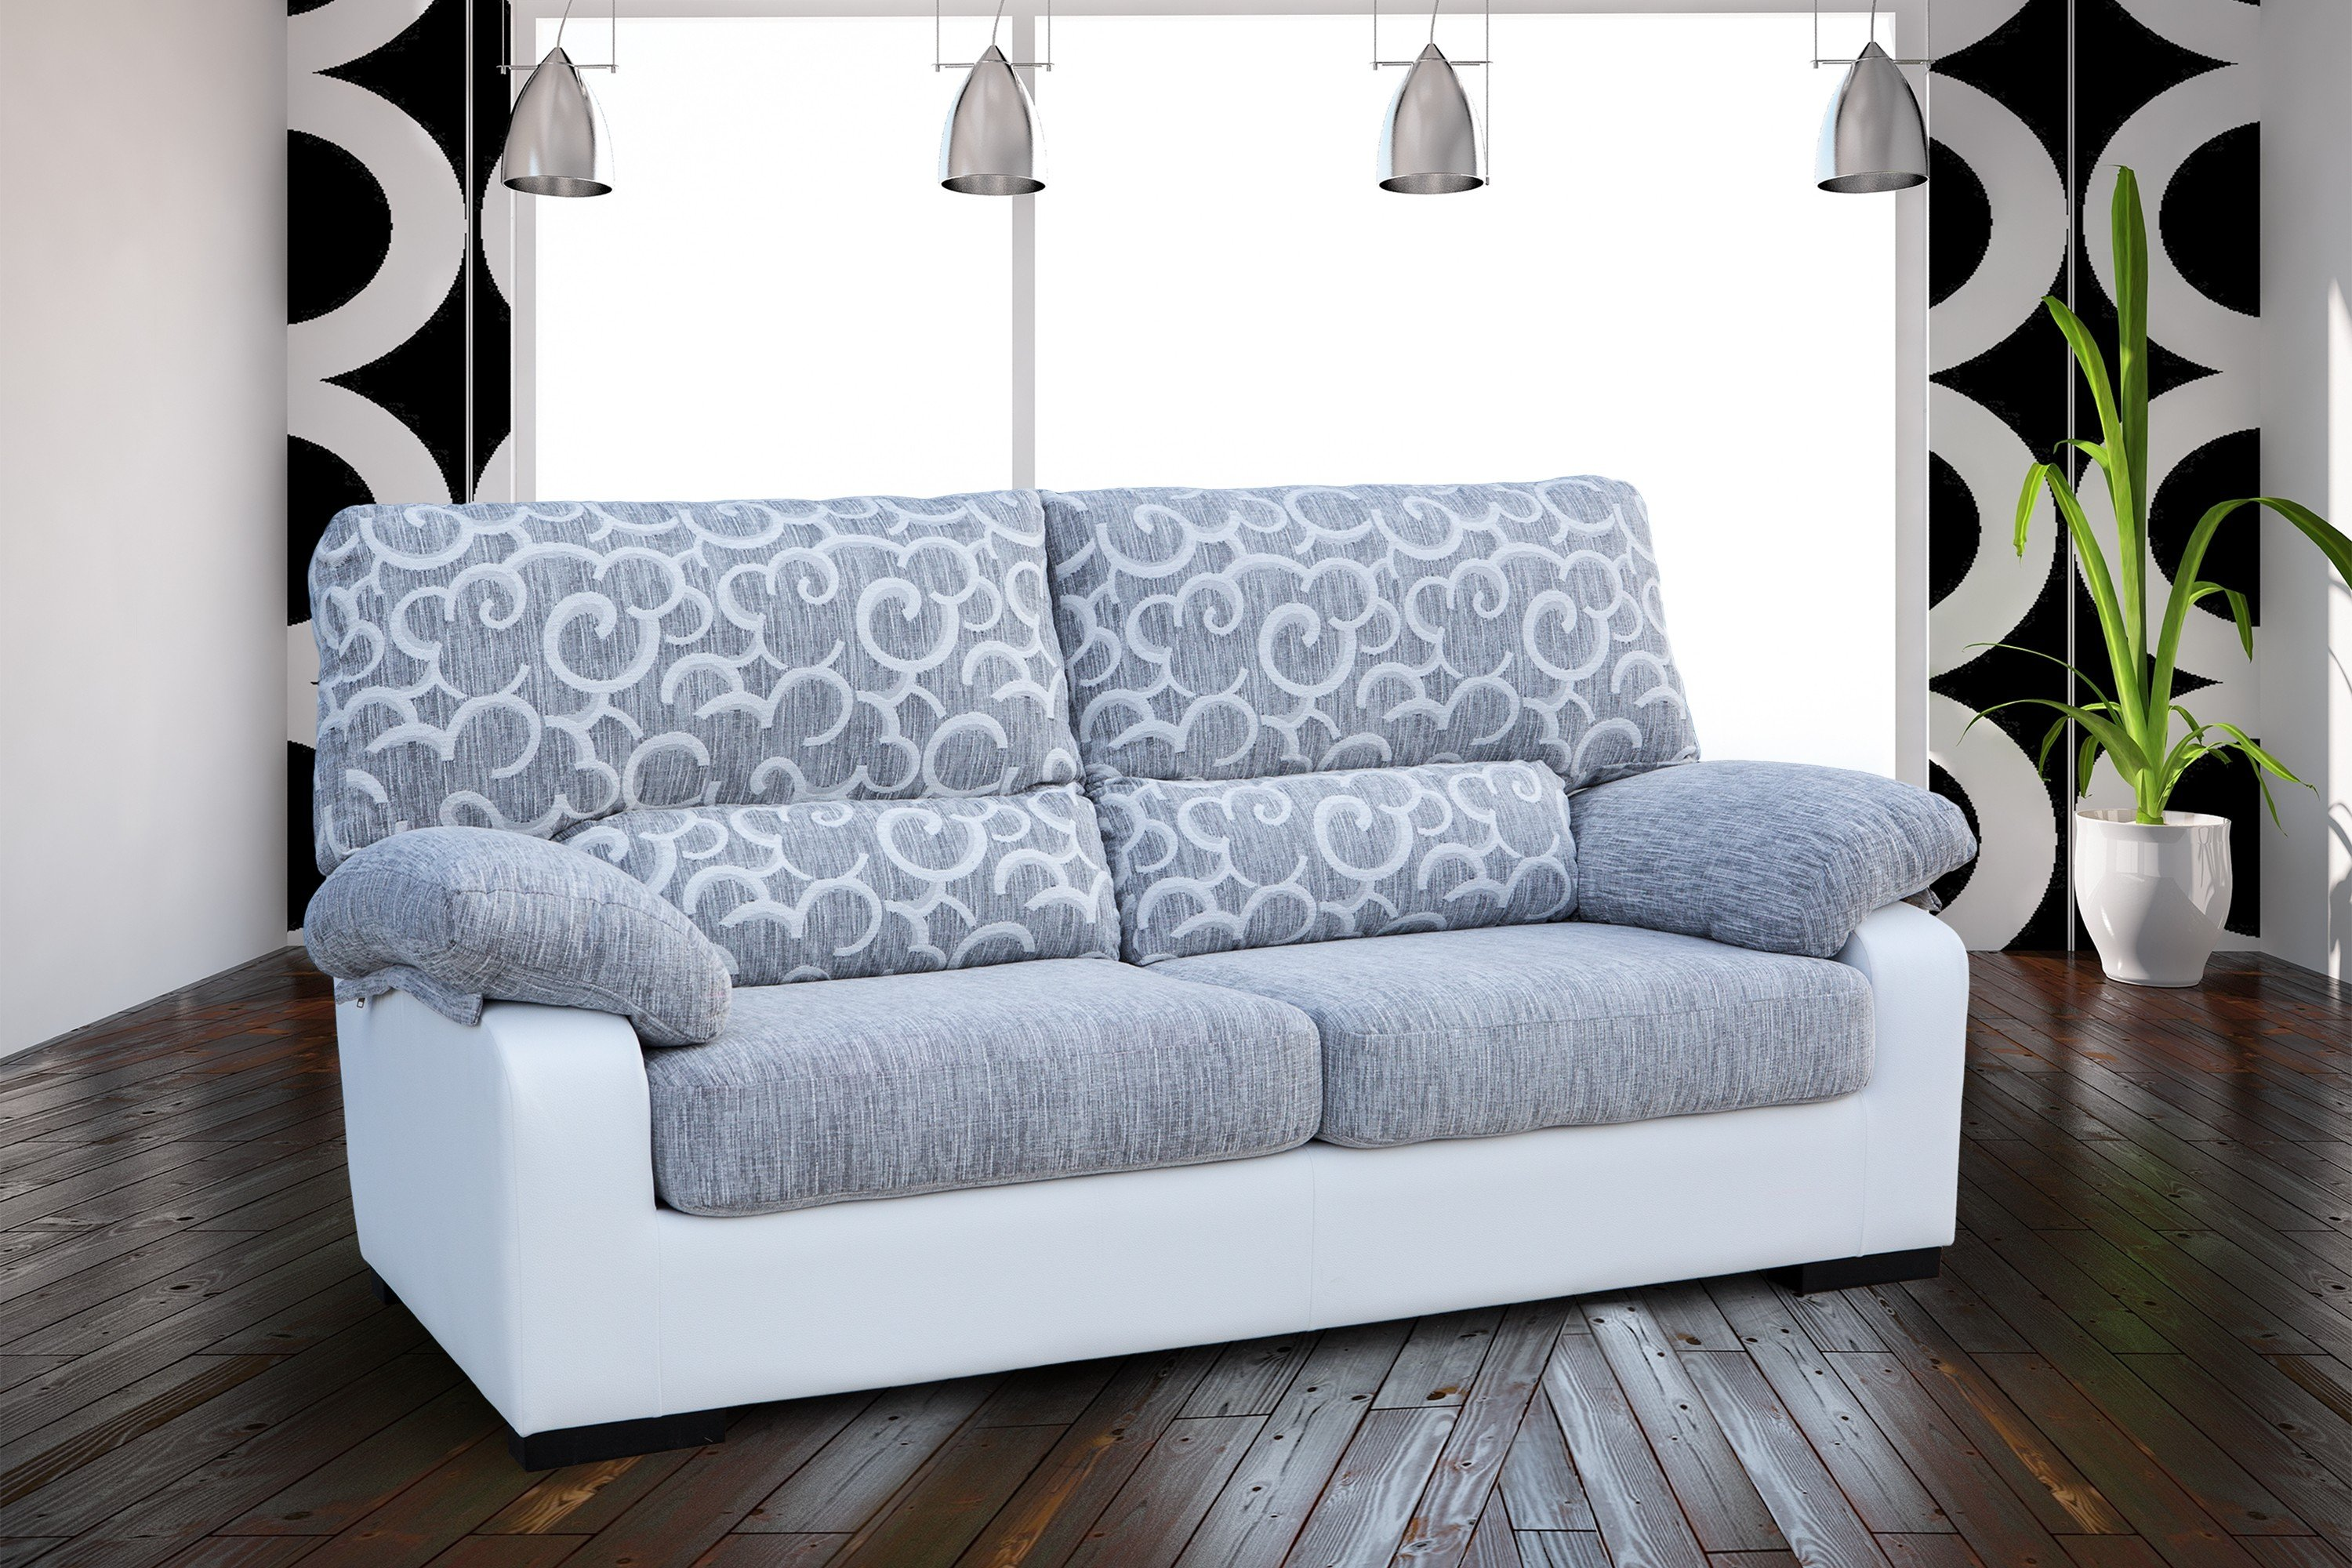 Sof s kal 04 sofas chaise longue sofas cama sillones for Sillones chaise longue